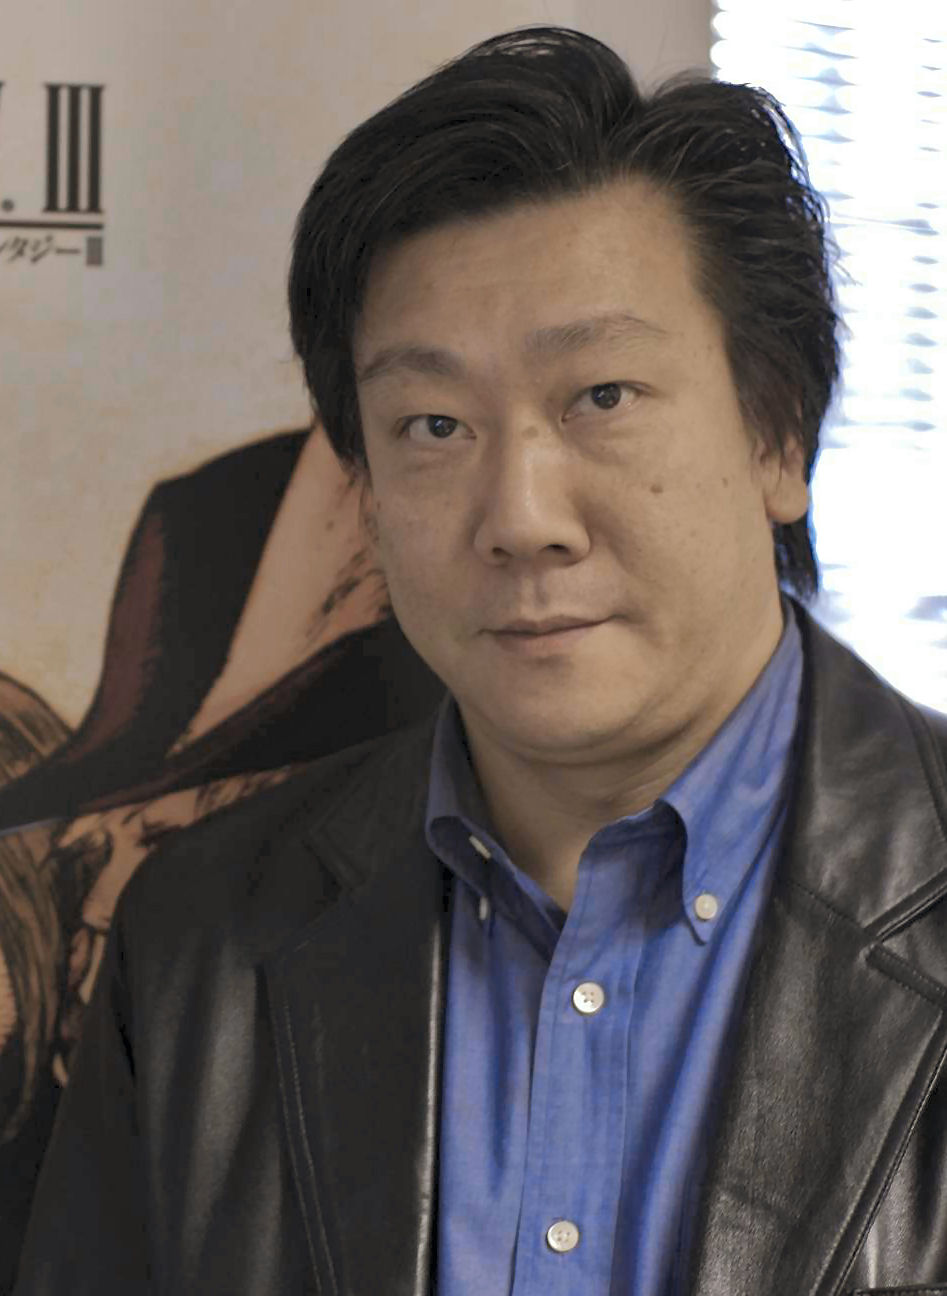 Click here to read Longtime &lt;em&gt;Final Fantasy&lt;/em&gt; Producer Stepping Down, Health Reasons Cited